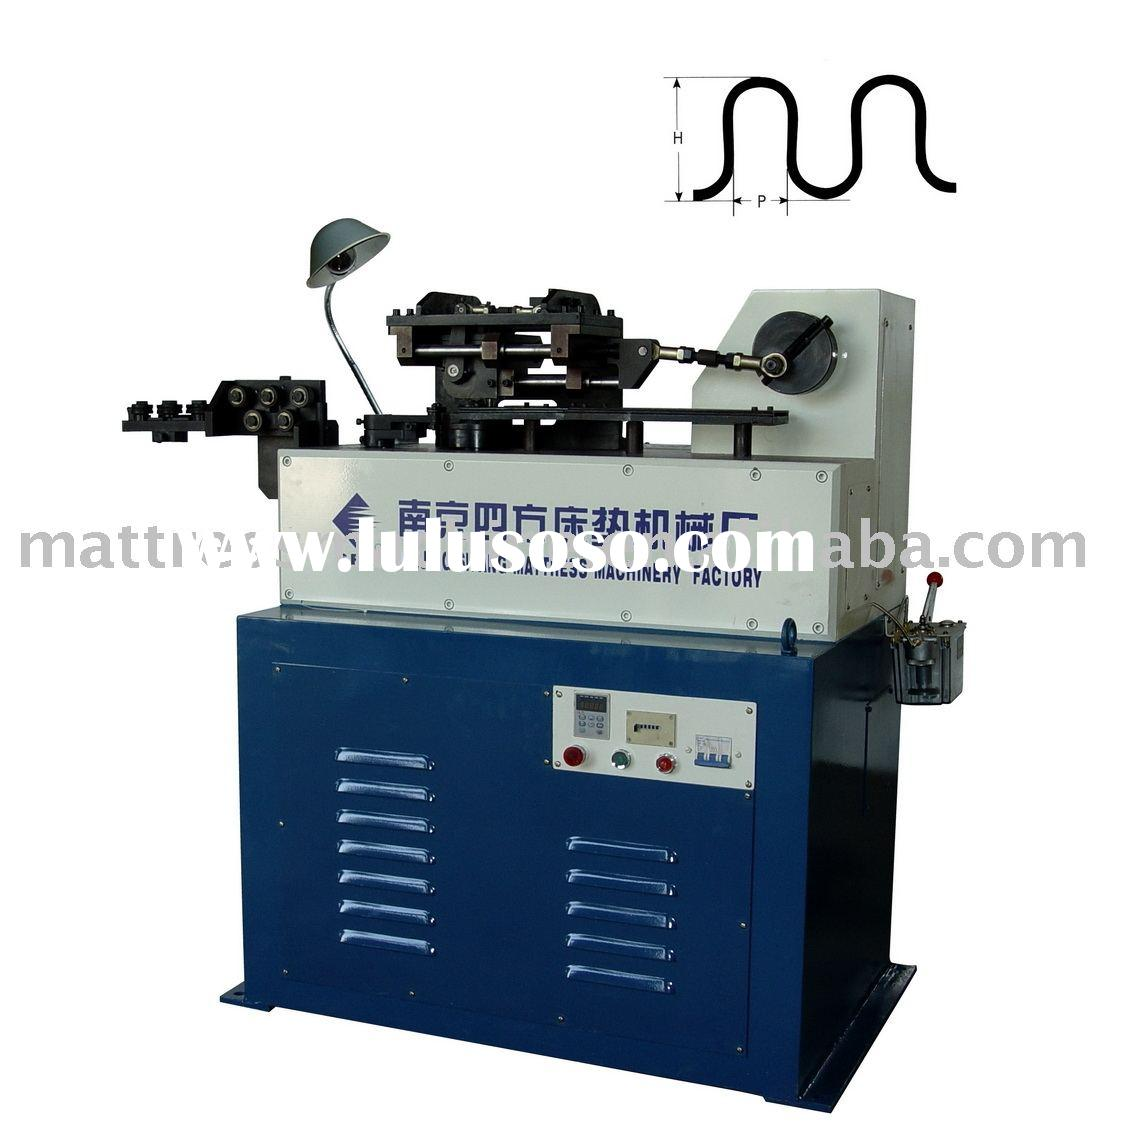 Automatic S-shape Zigzag Spring Forming Machine For Sofa Spring Equipment